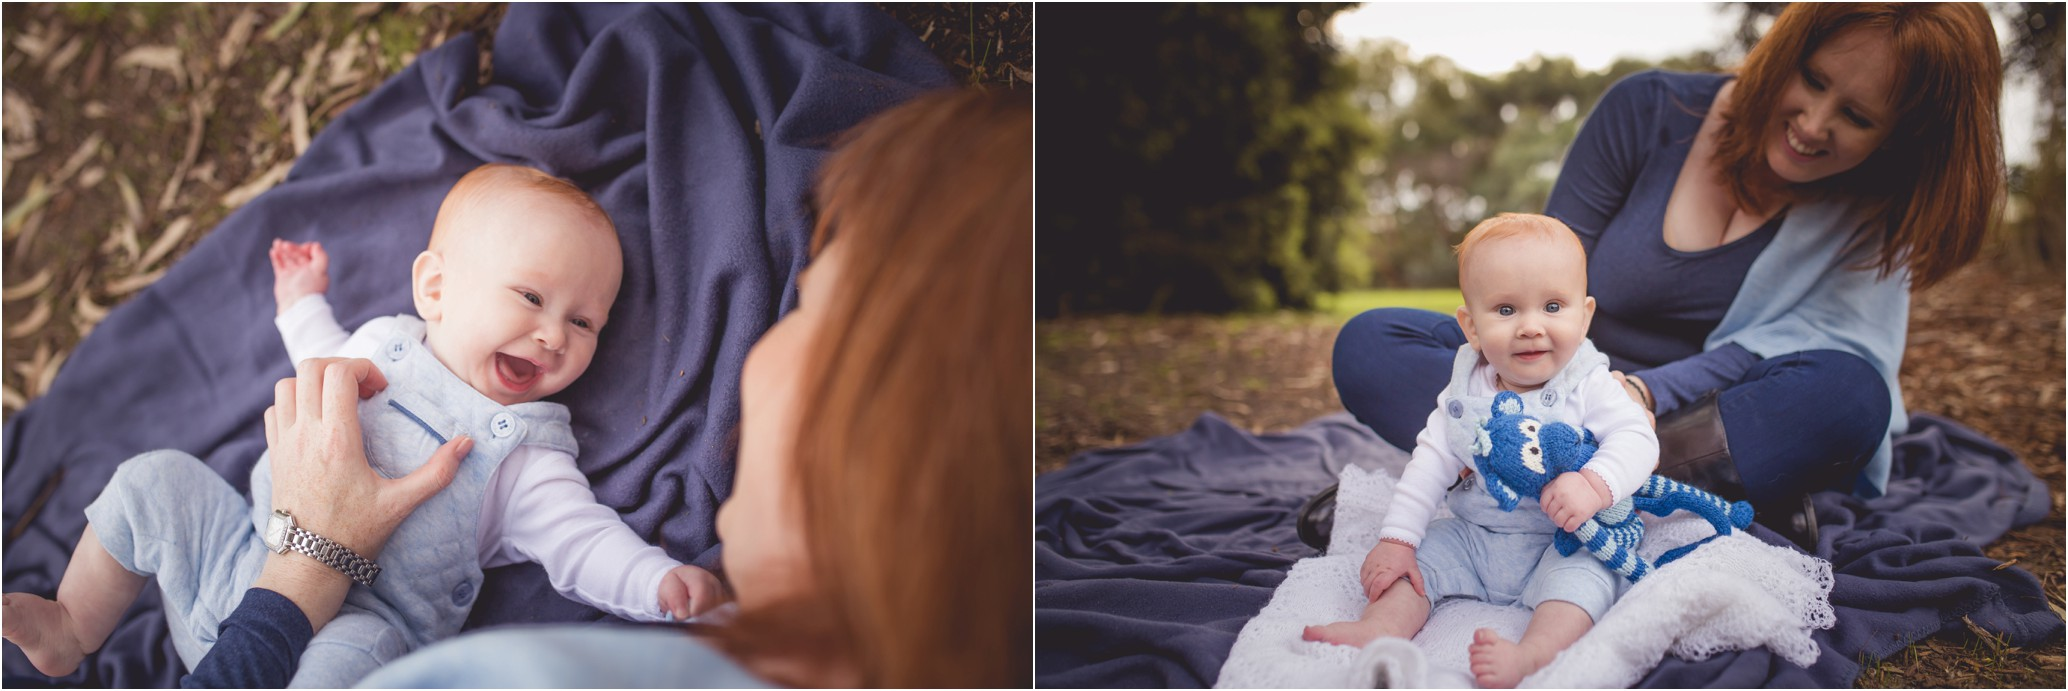 Newborn Photography Geelong_1004